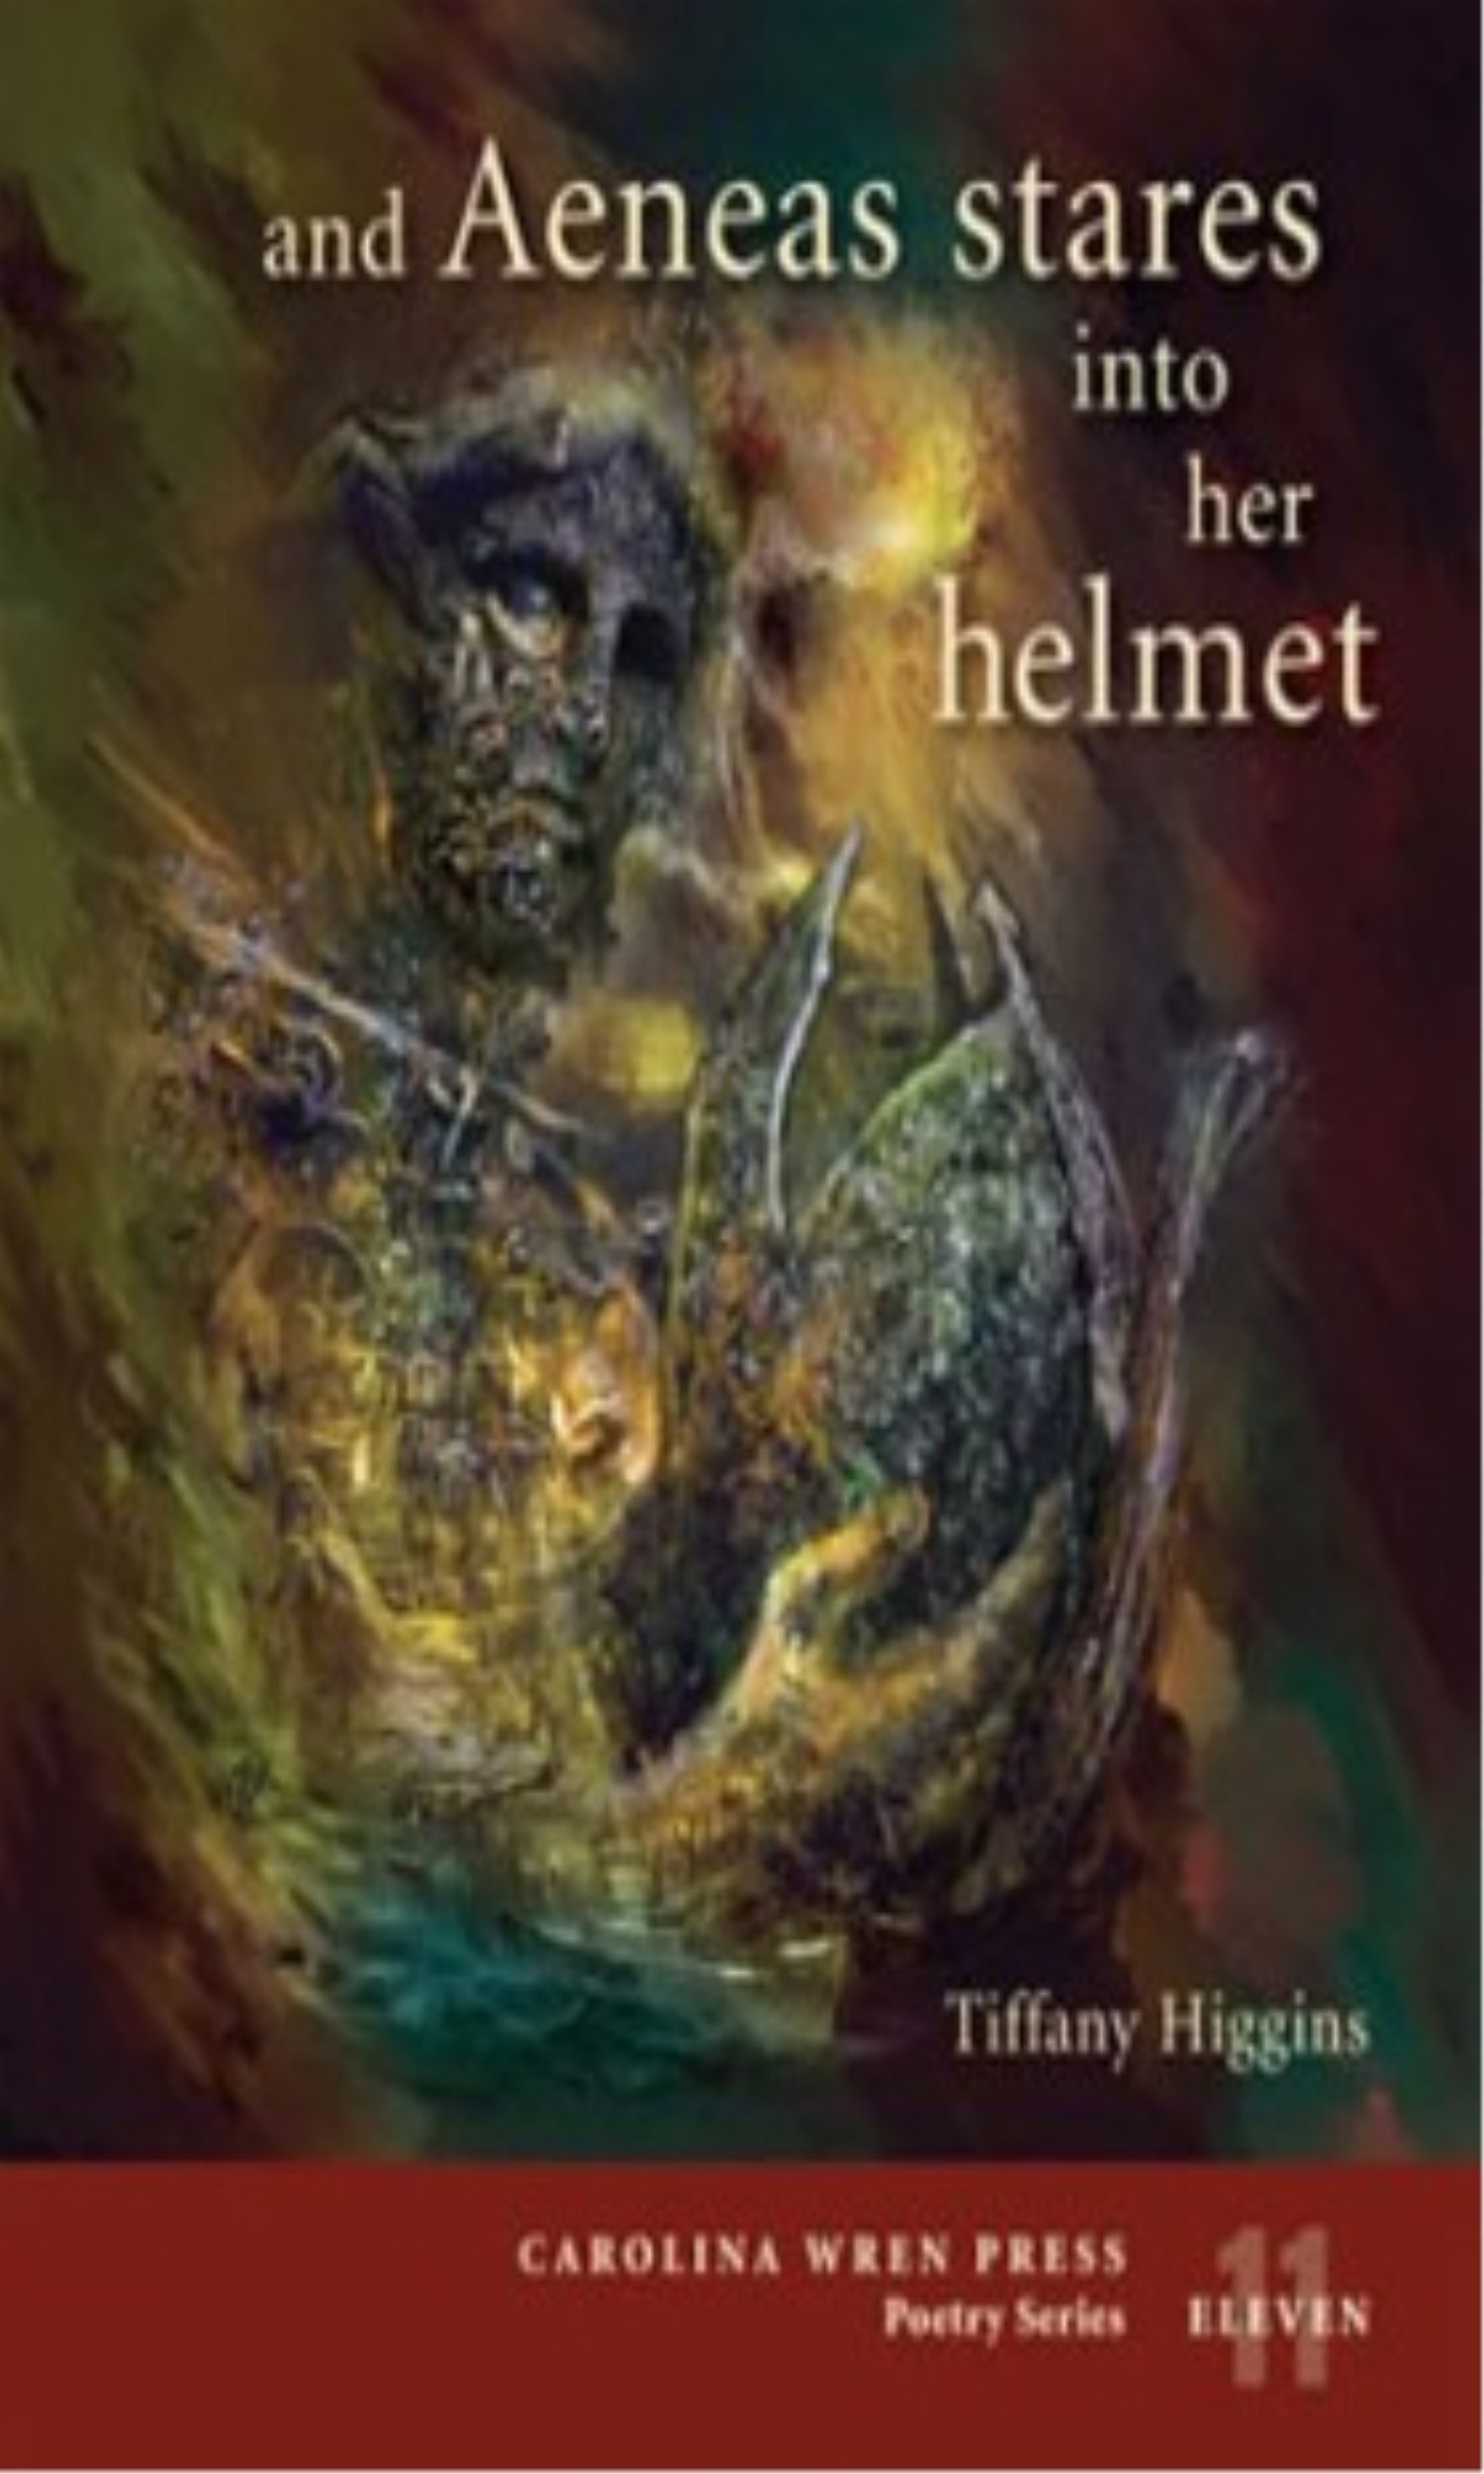 Download and Aeneas stares into her helmet (The Carolina Wren Press Poetry Series) PDF